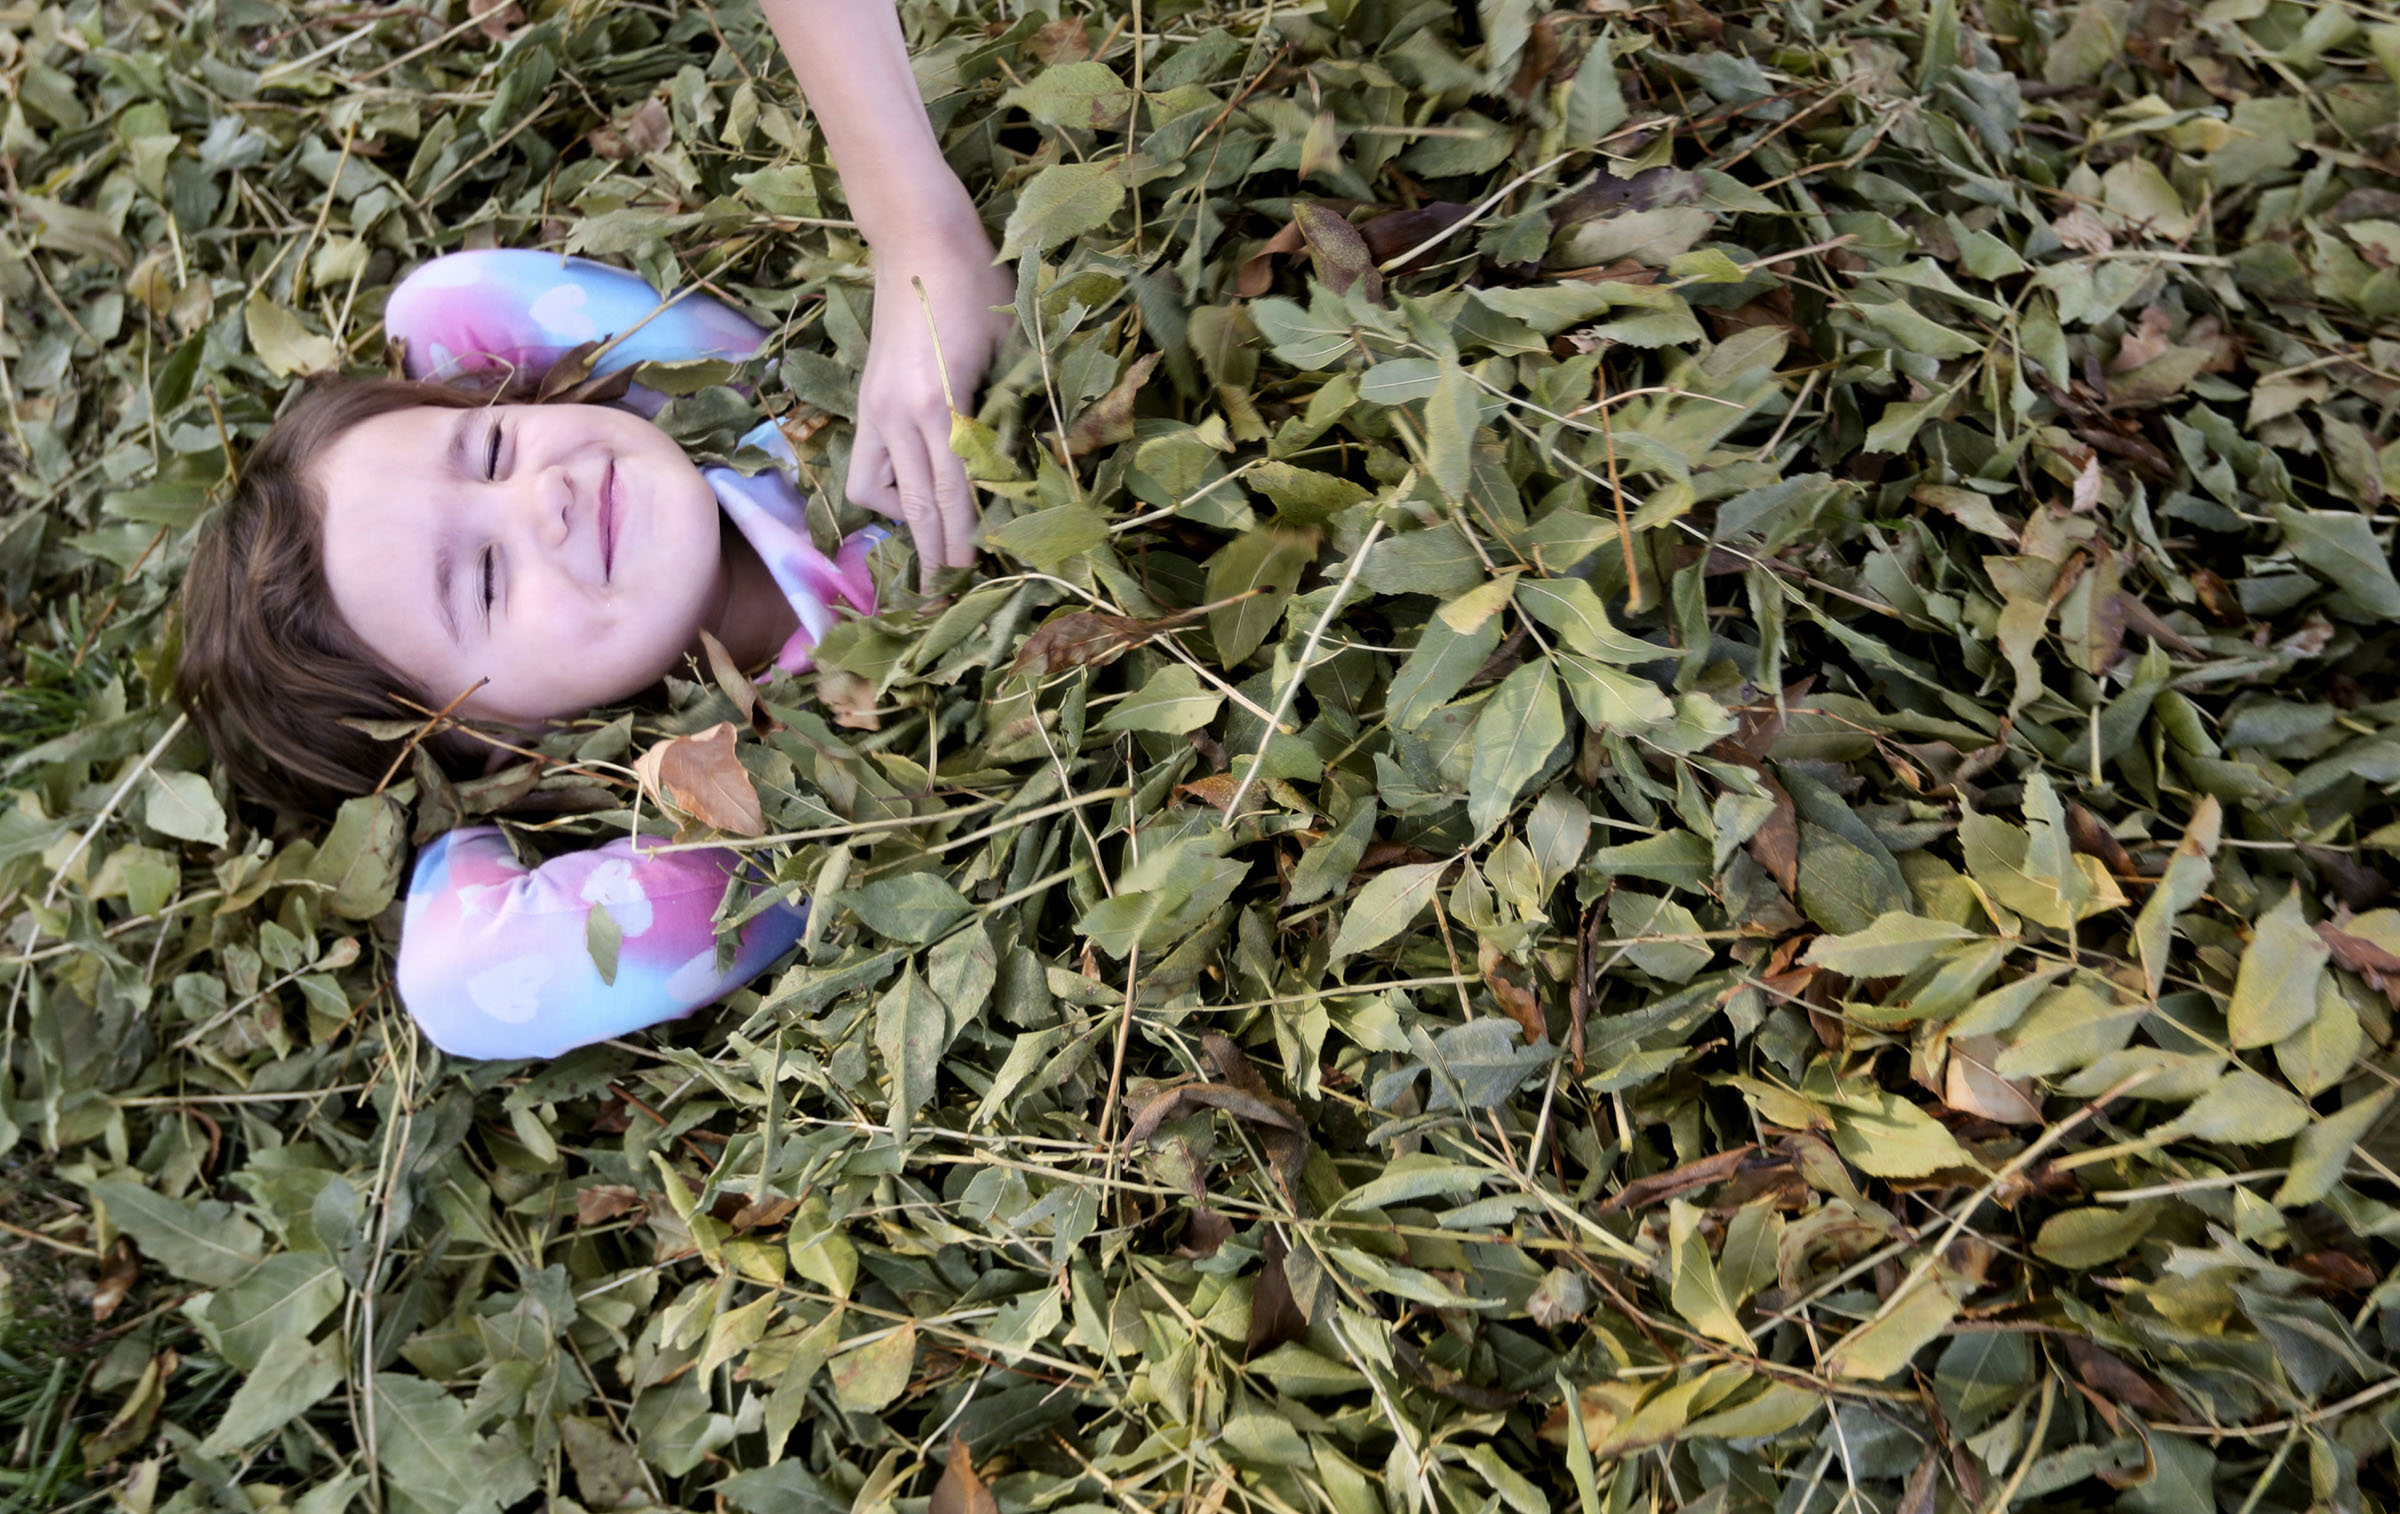 Cordelia Rogers gets buried in a pile of leaves in her front yard in South Salt Lake on Thursday, Oct. 29, 2020.